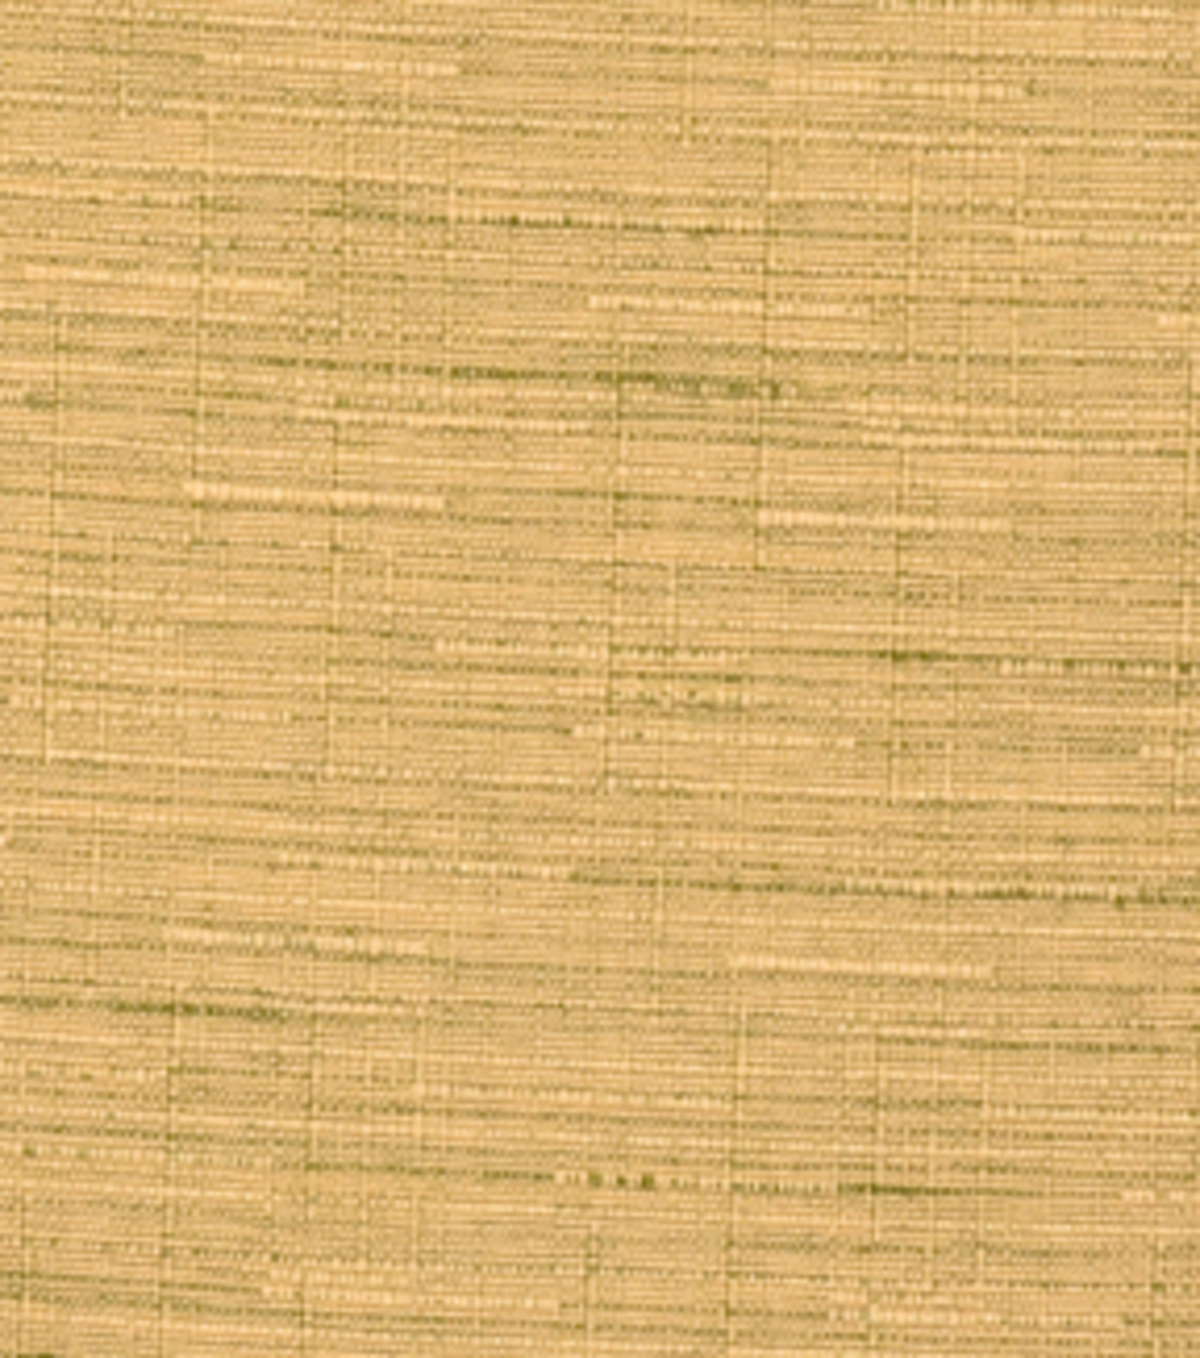 8\u0027\u0027x8\u0027\u0027 Home Decor Fabric Swatch-Solid Fabric Eaton Square Malmont Olive